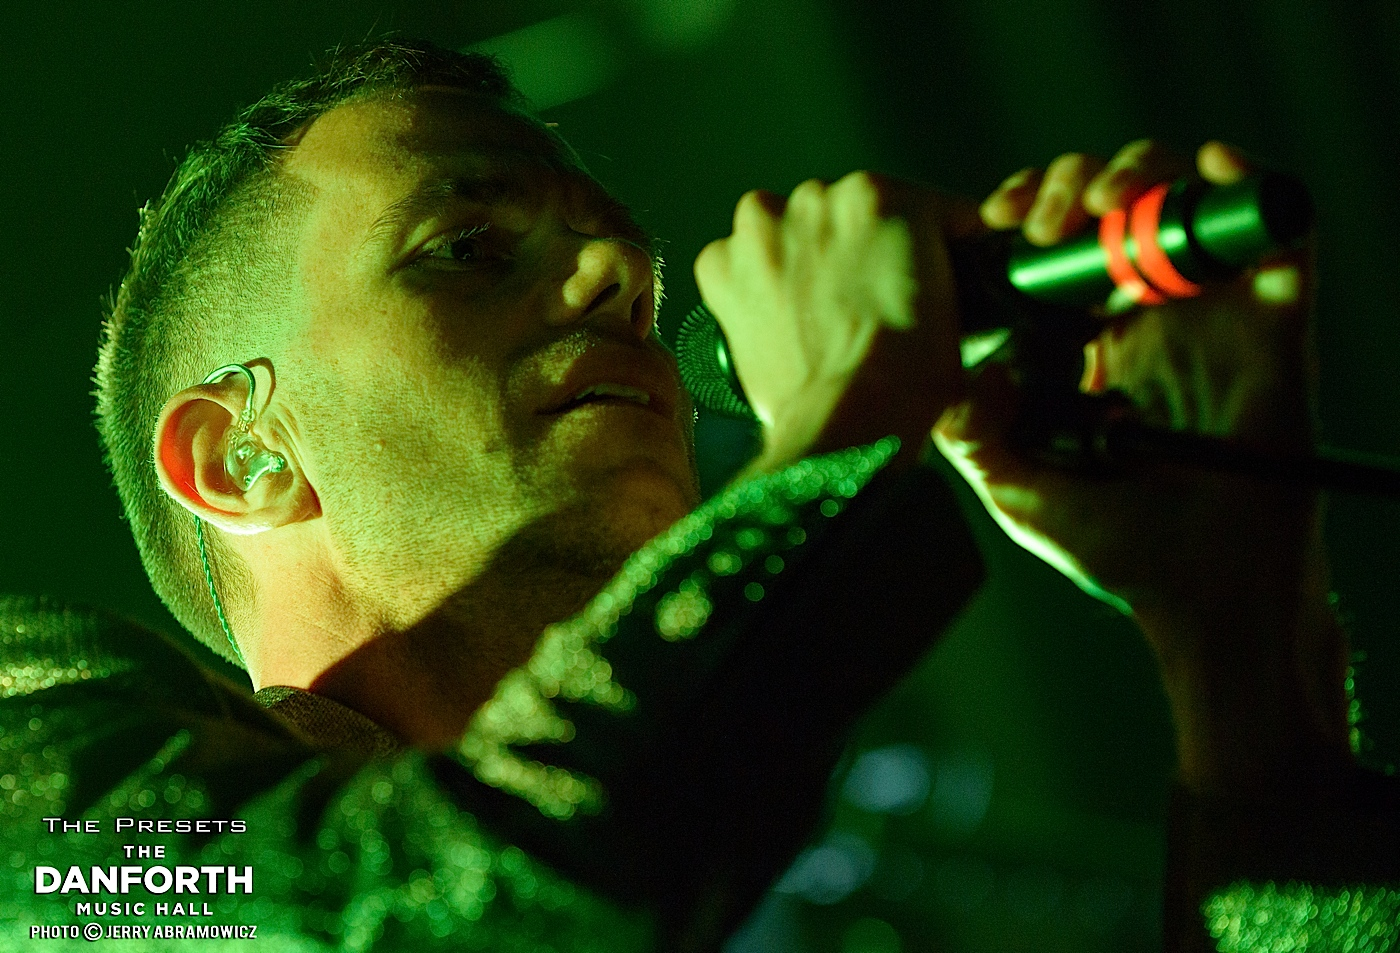 20130510 The Presets perform at The Danforth Music Hall Toronto 0469